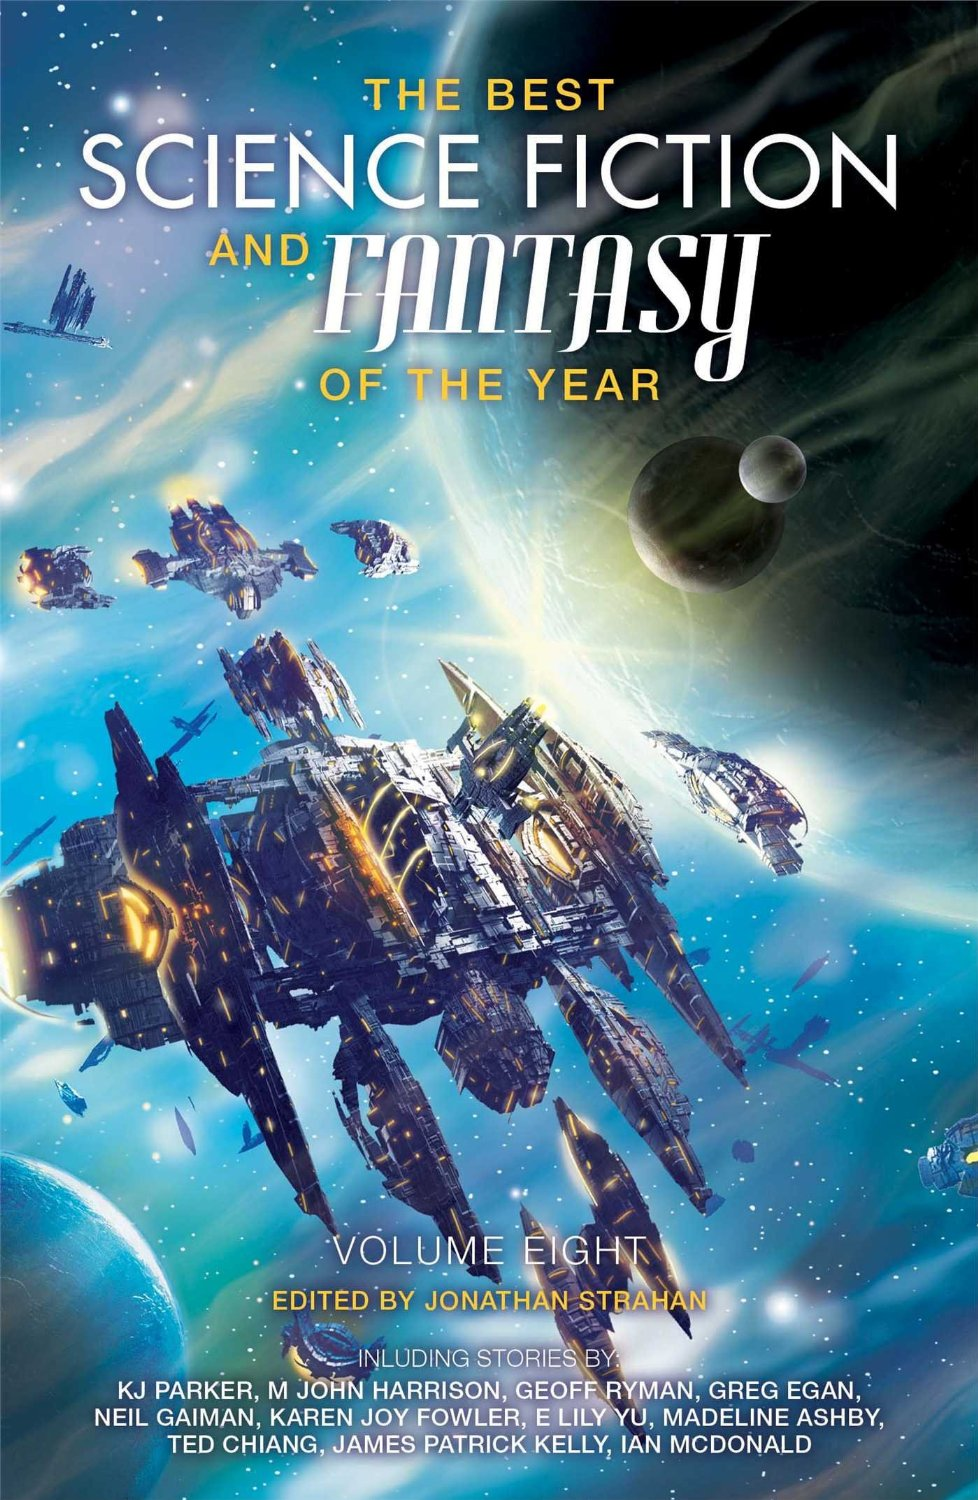 Channeling the Future: Essays on Science Fiction and Fantasy Television